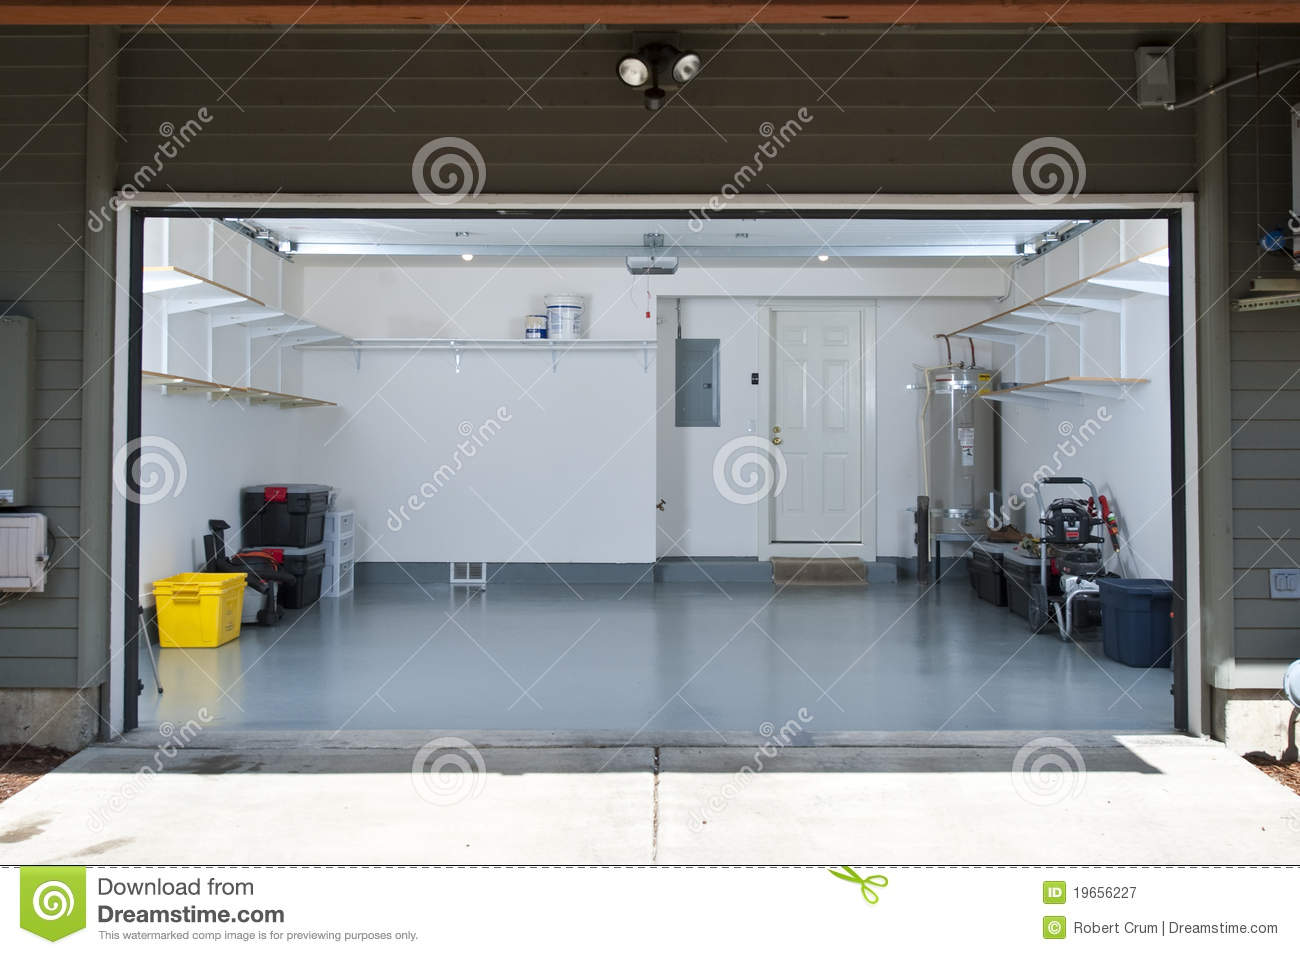 Clean garage stock image Image of construction white  19656227